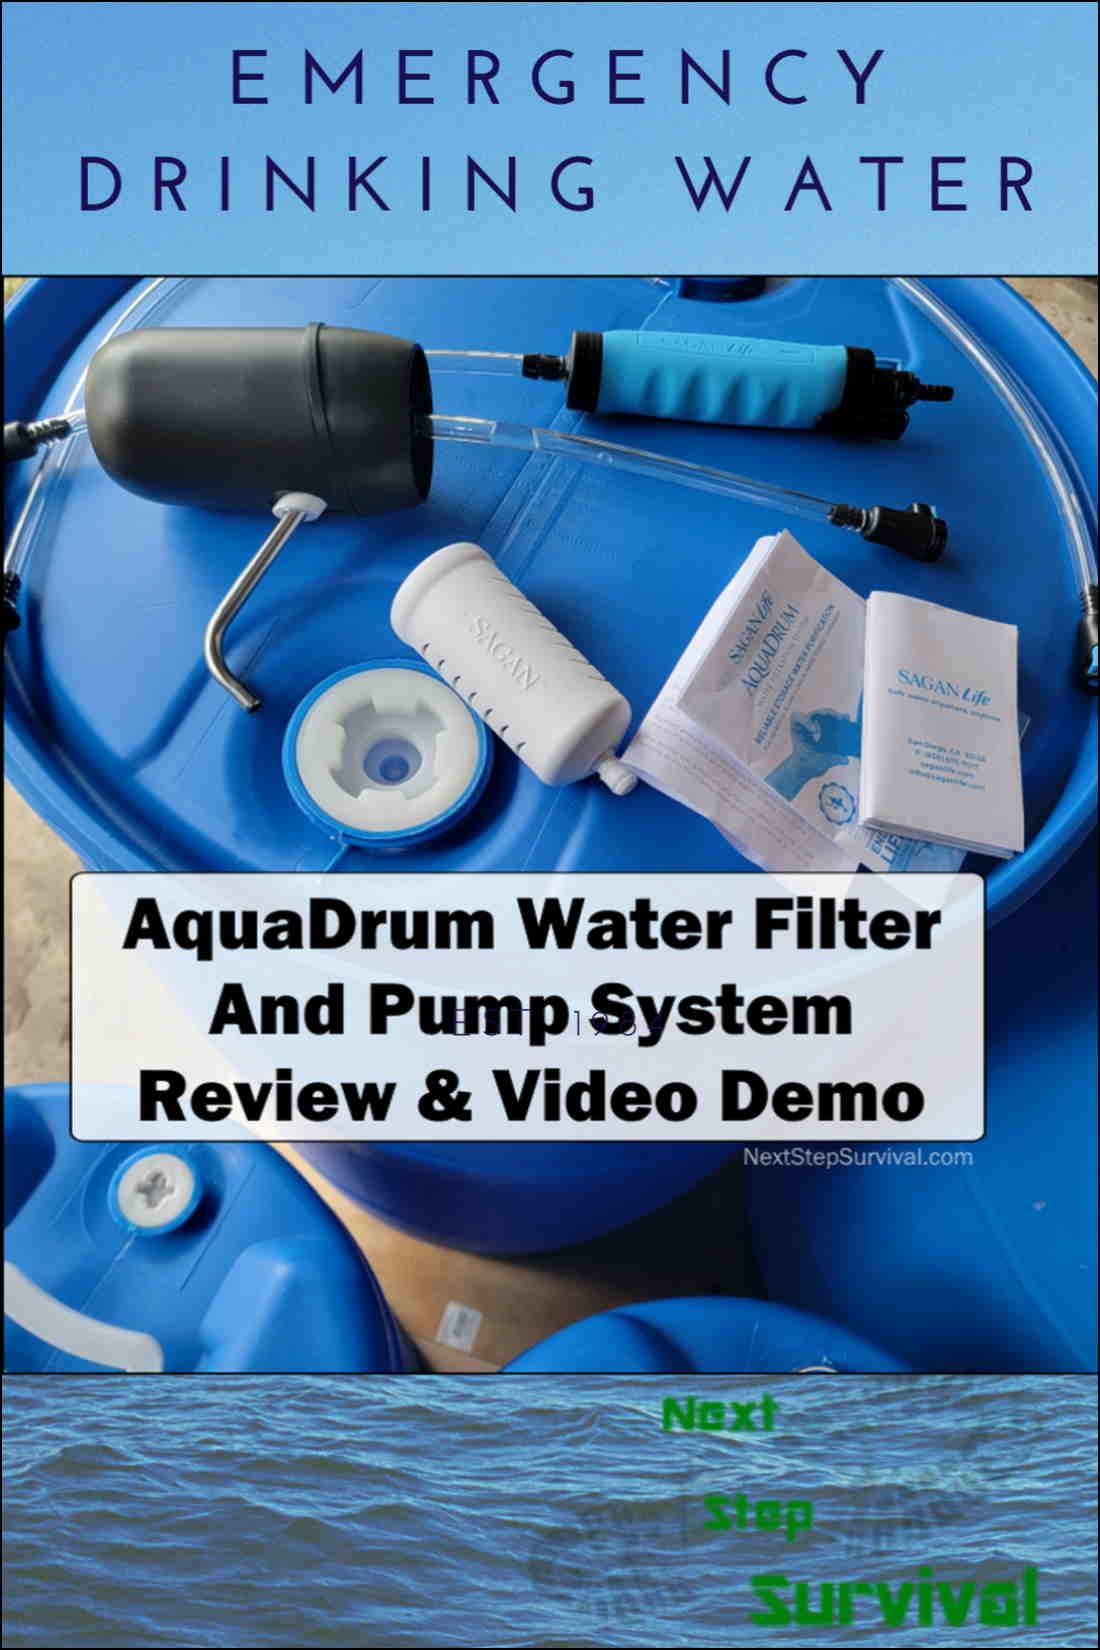 Pinterest Image - AquaDrum Water Purification System Review & Demo